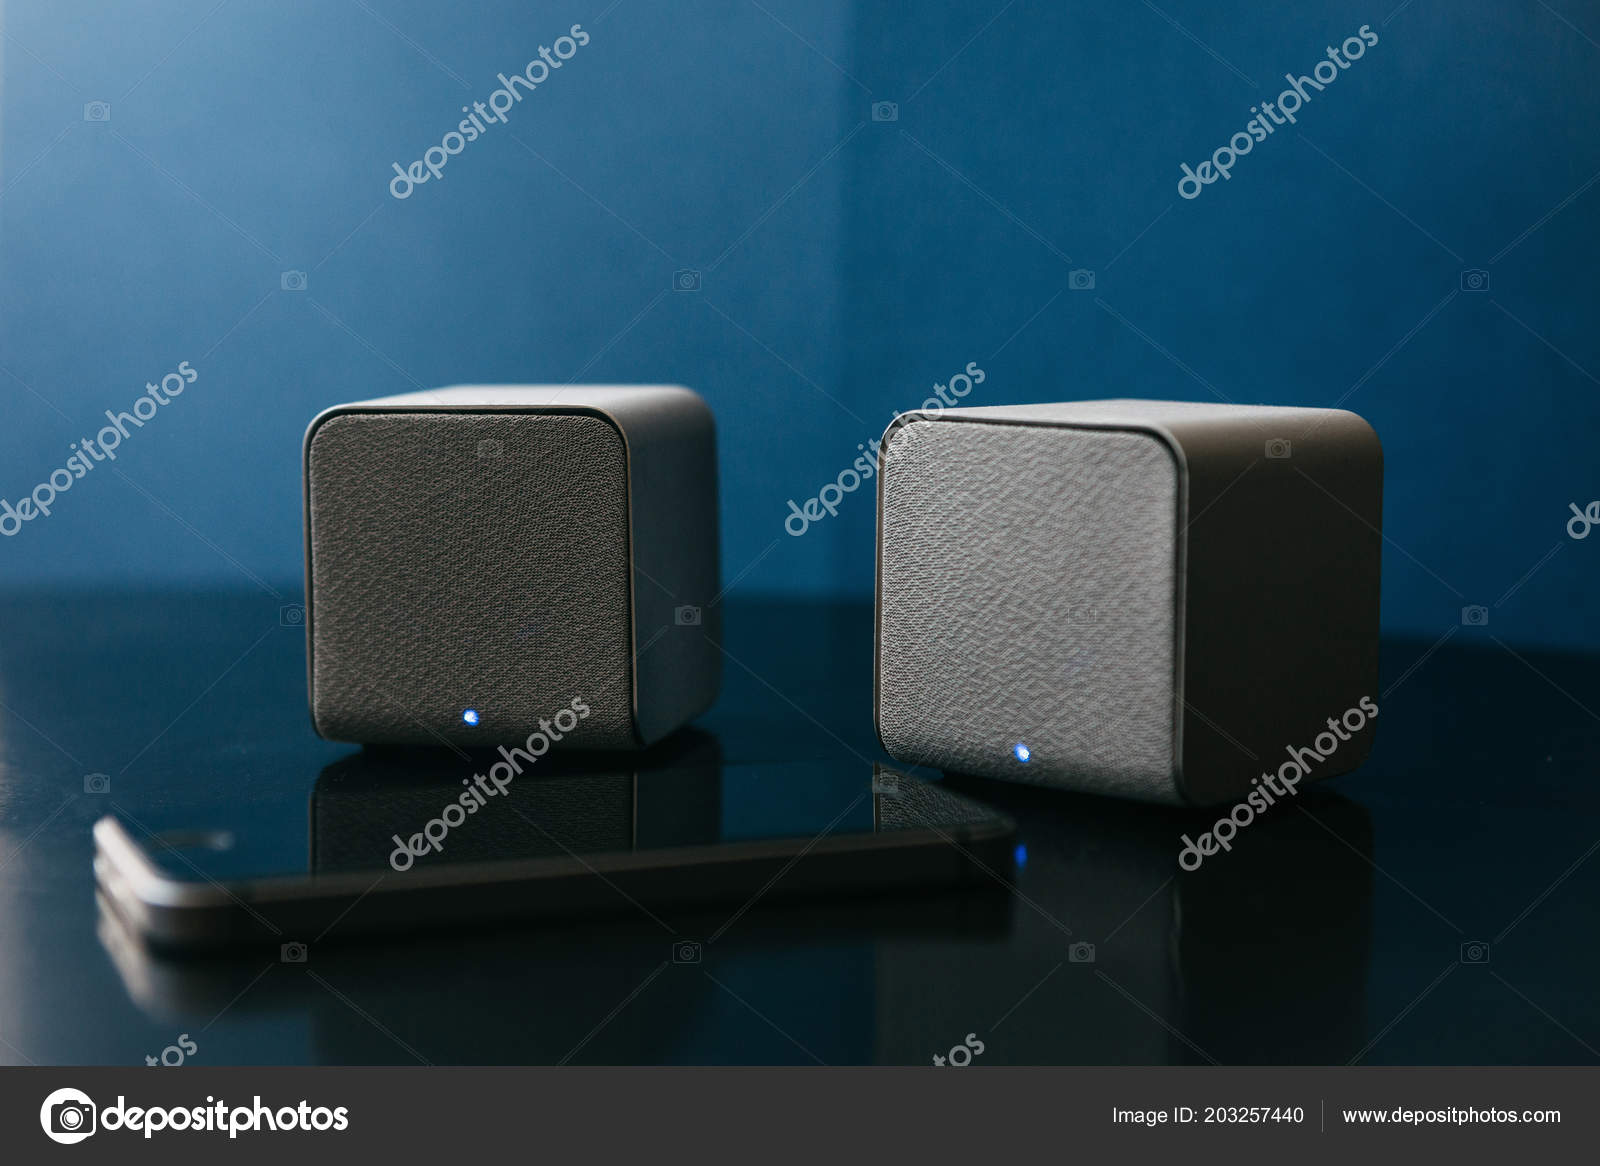 Wireless speakers and a cell phone next to them on a dark